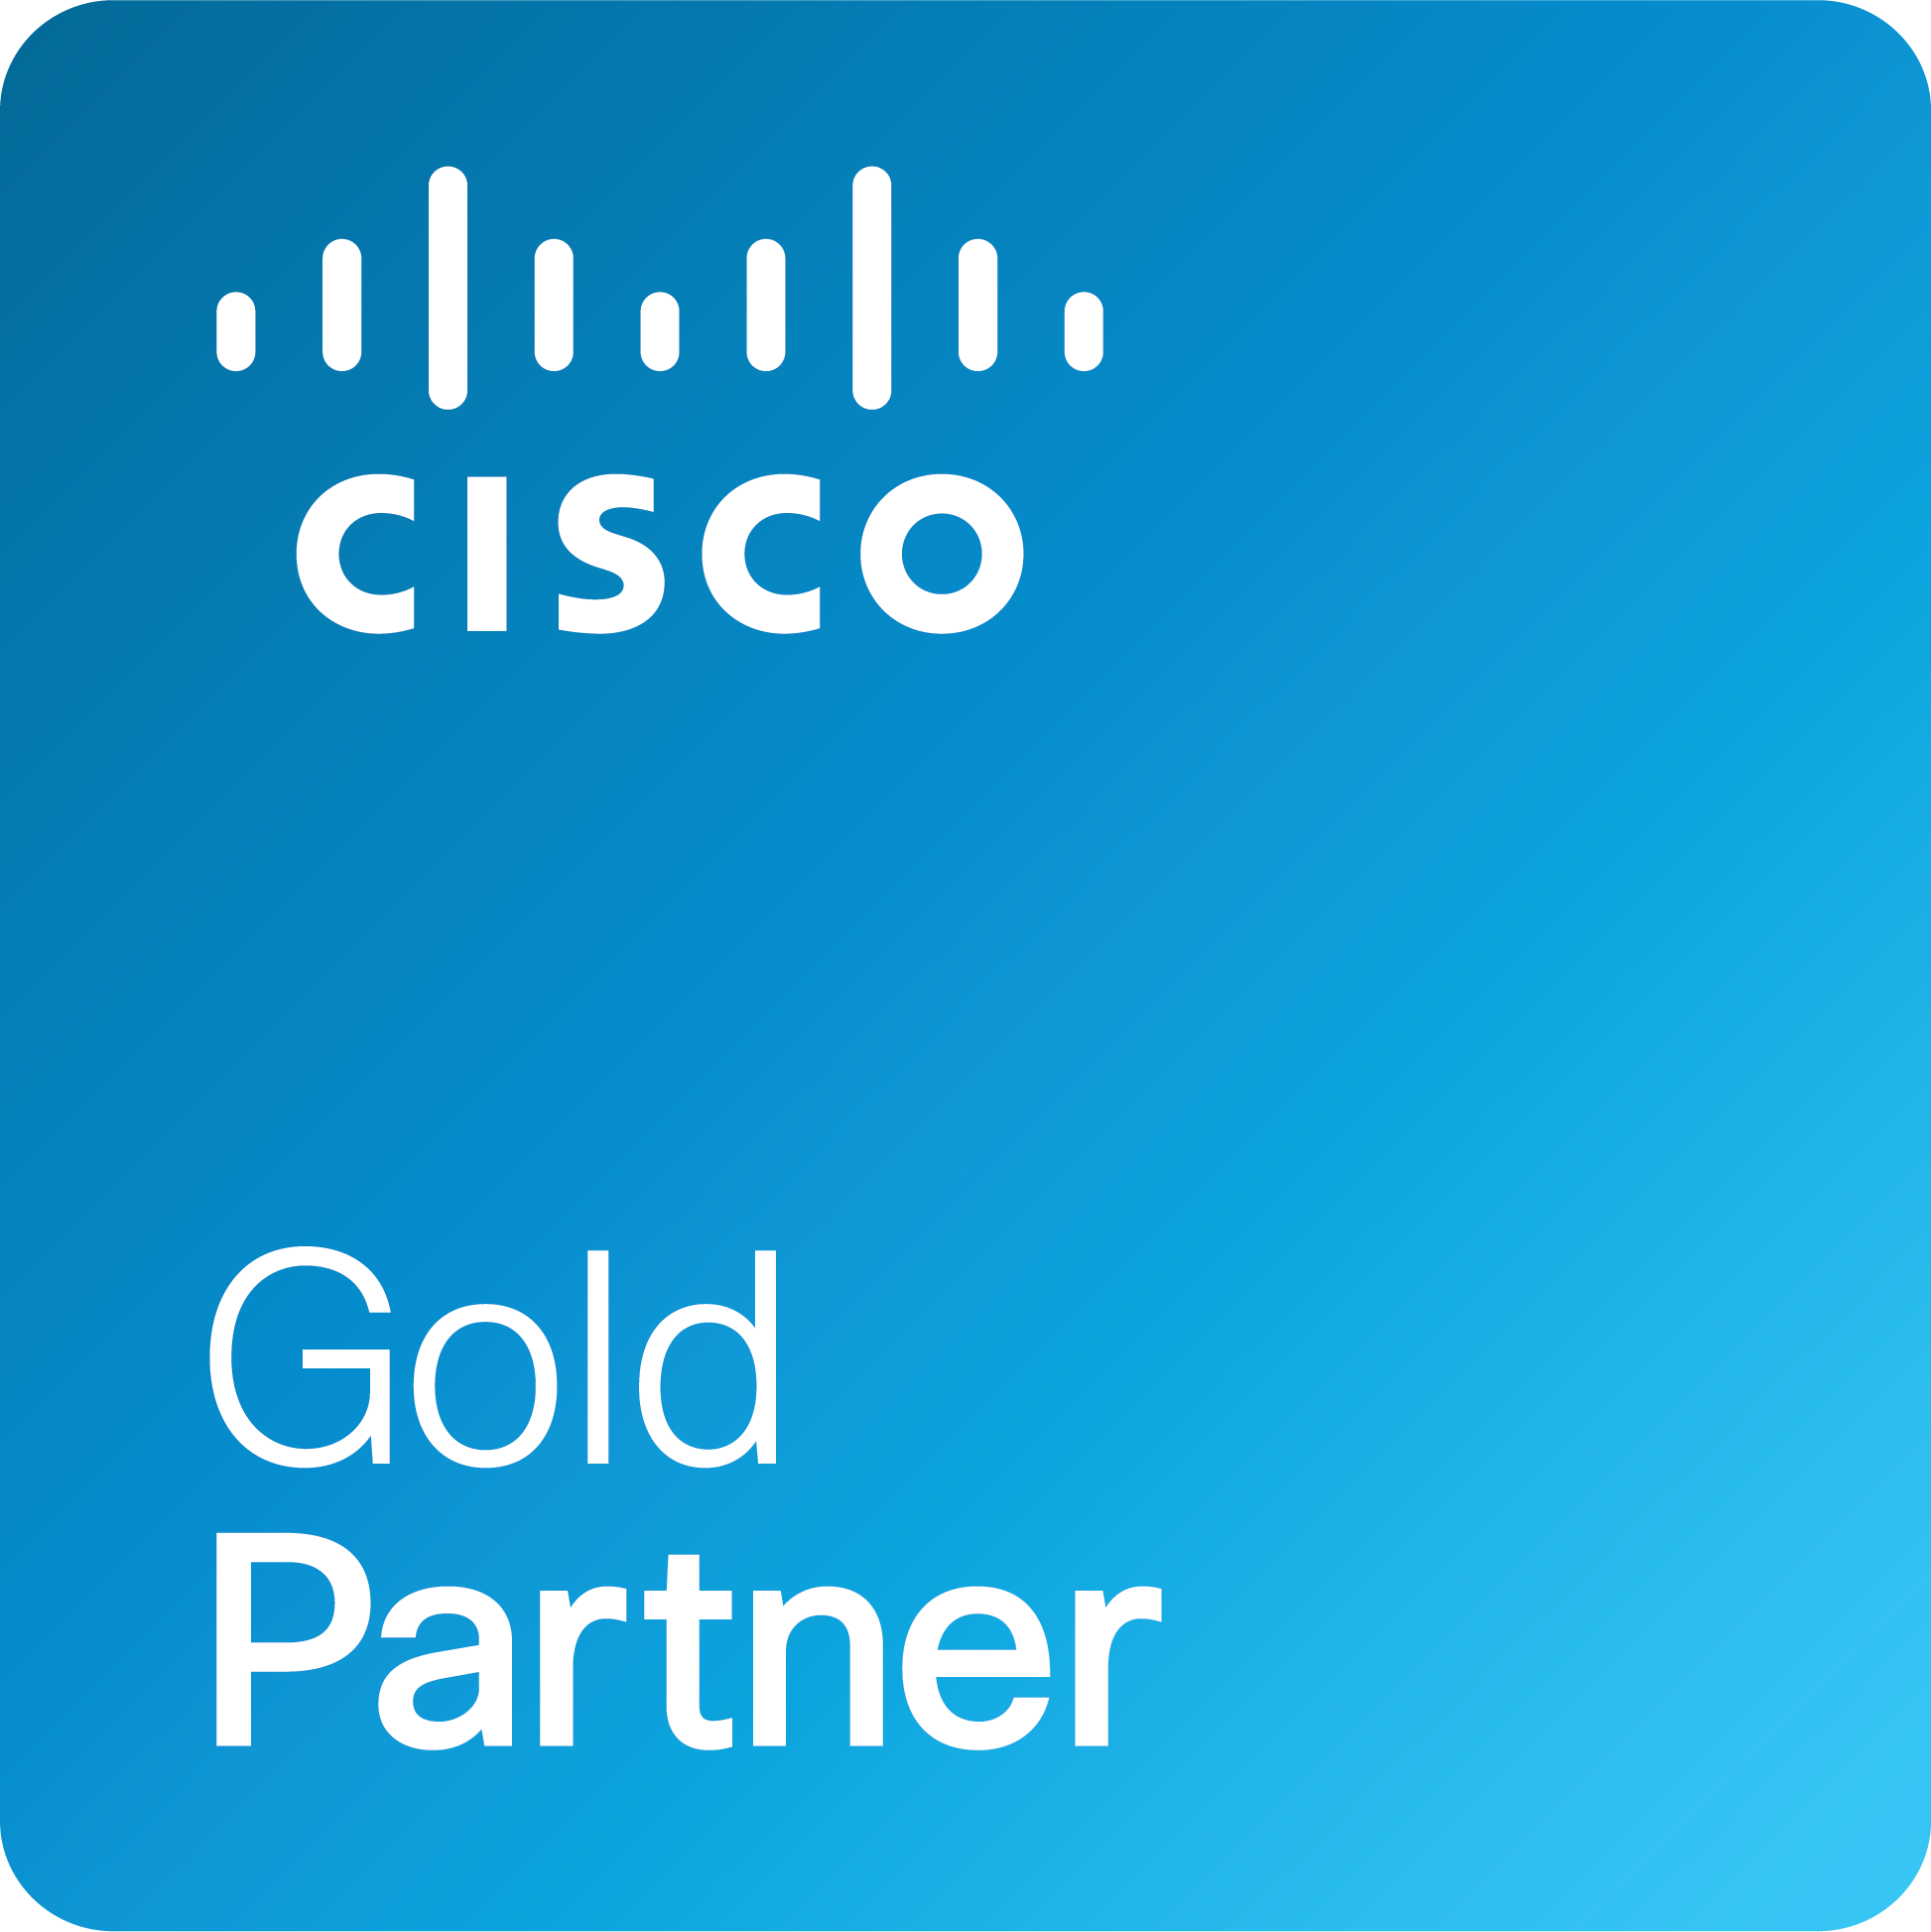 Cisco_Partner_Channel_Gold.png